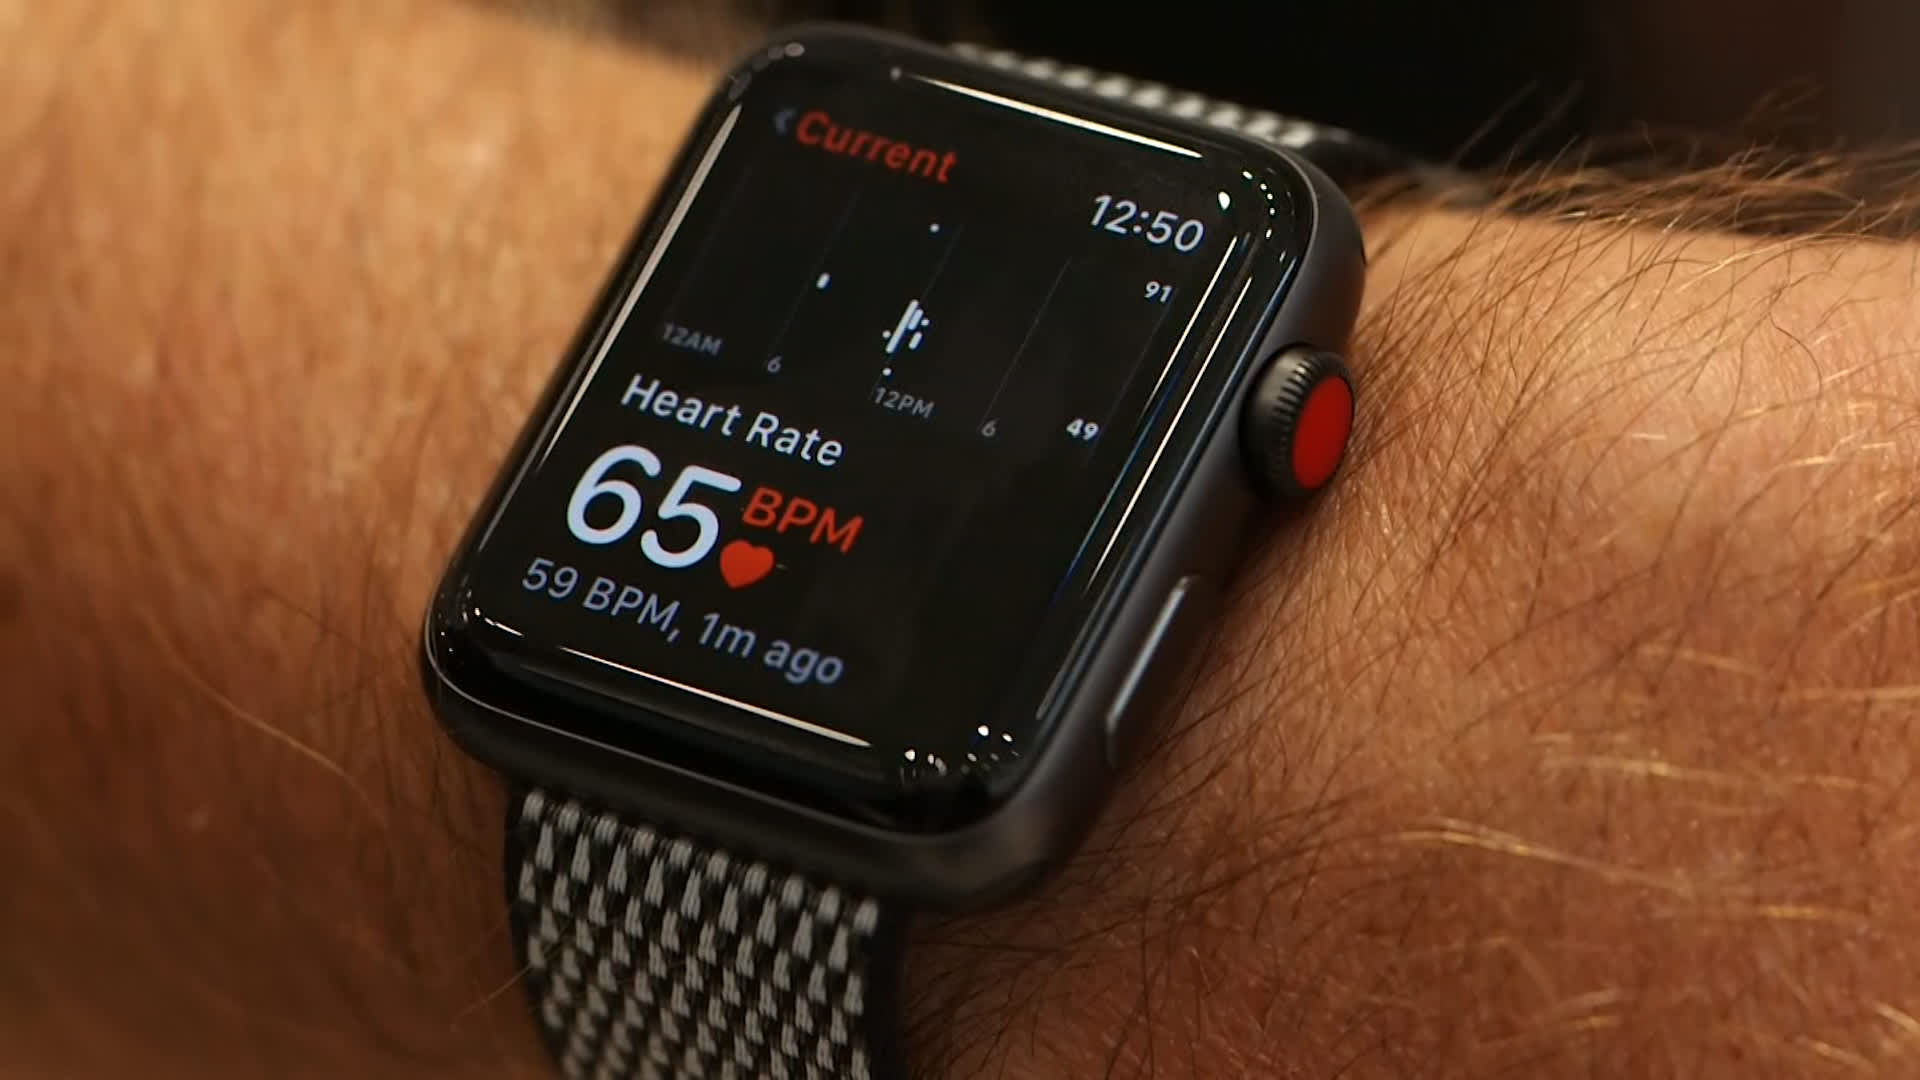 Apple Always Viewed The Watch As A Health Device Jony Ive Says